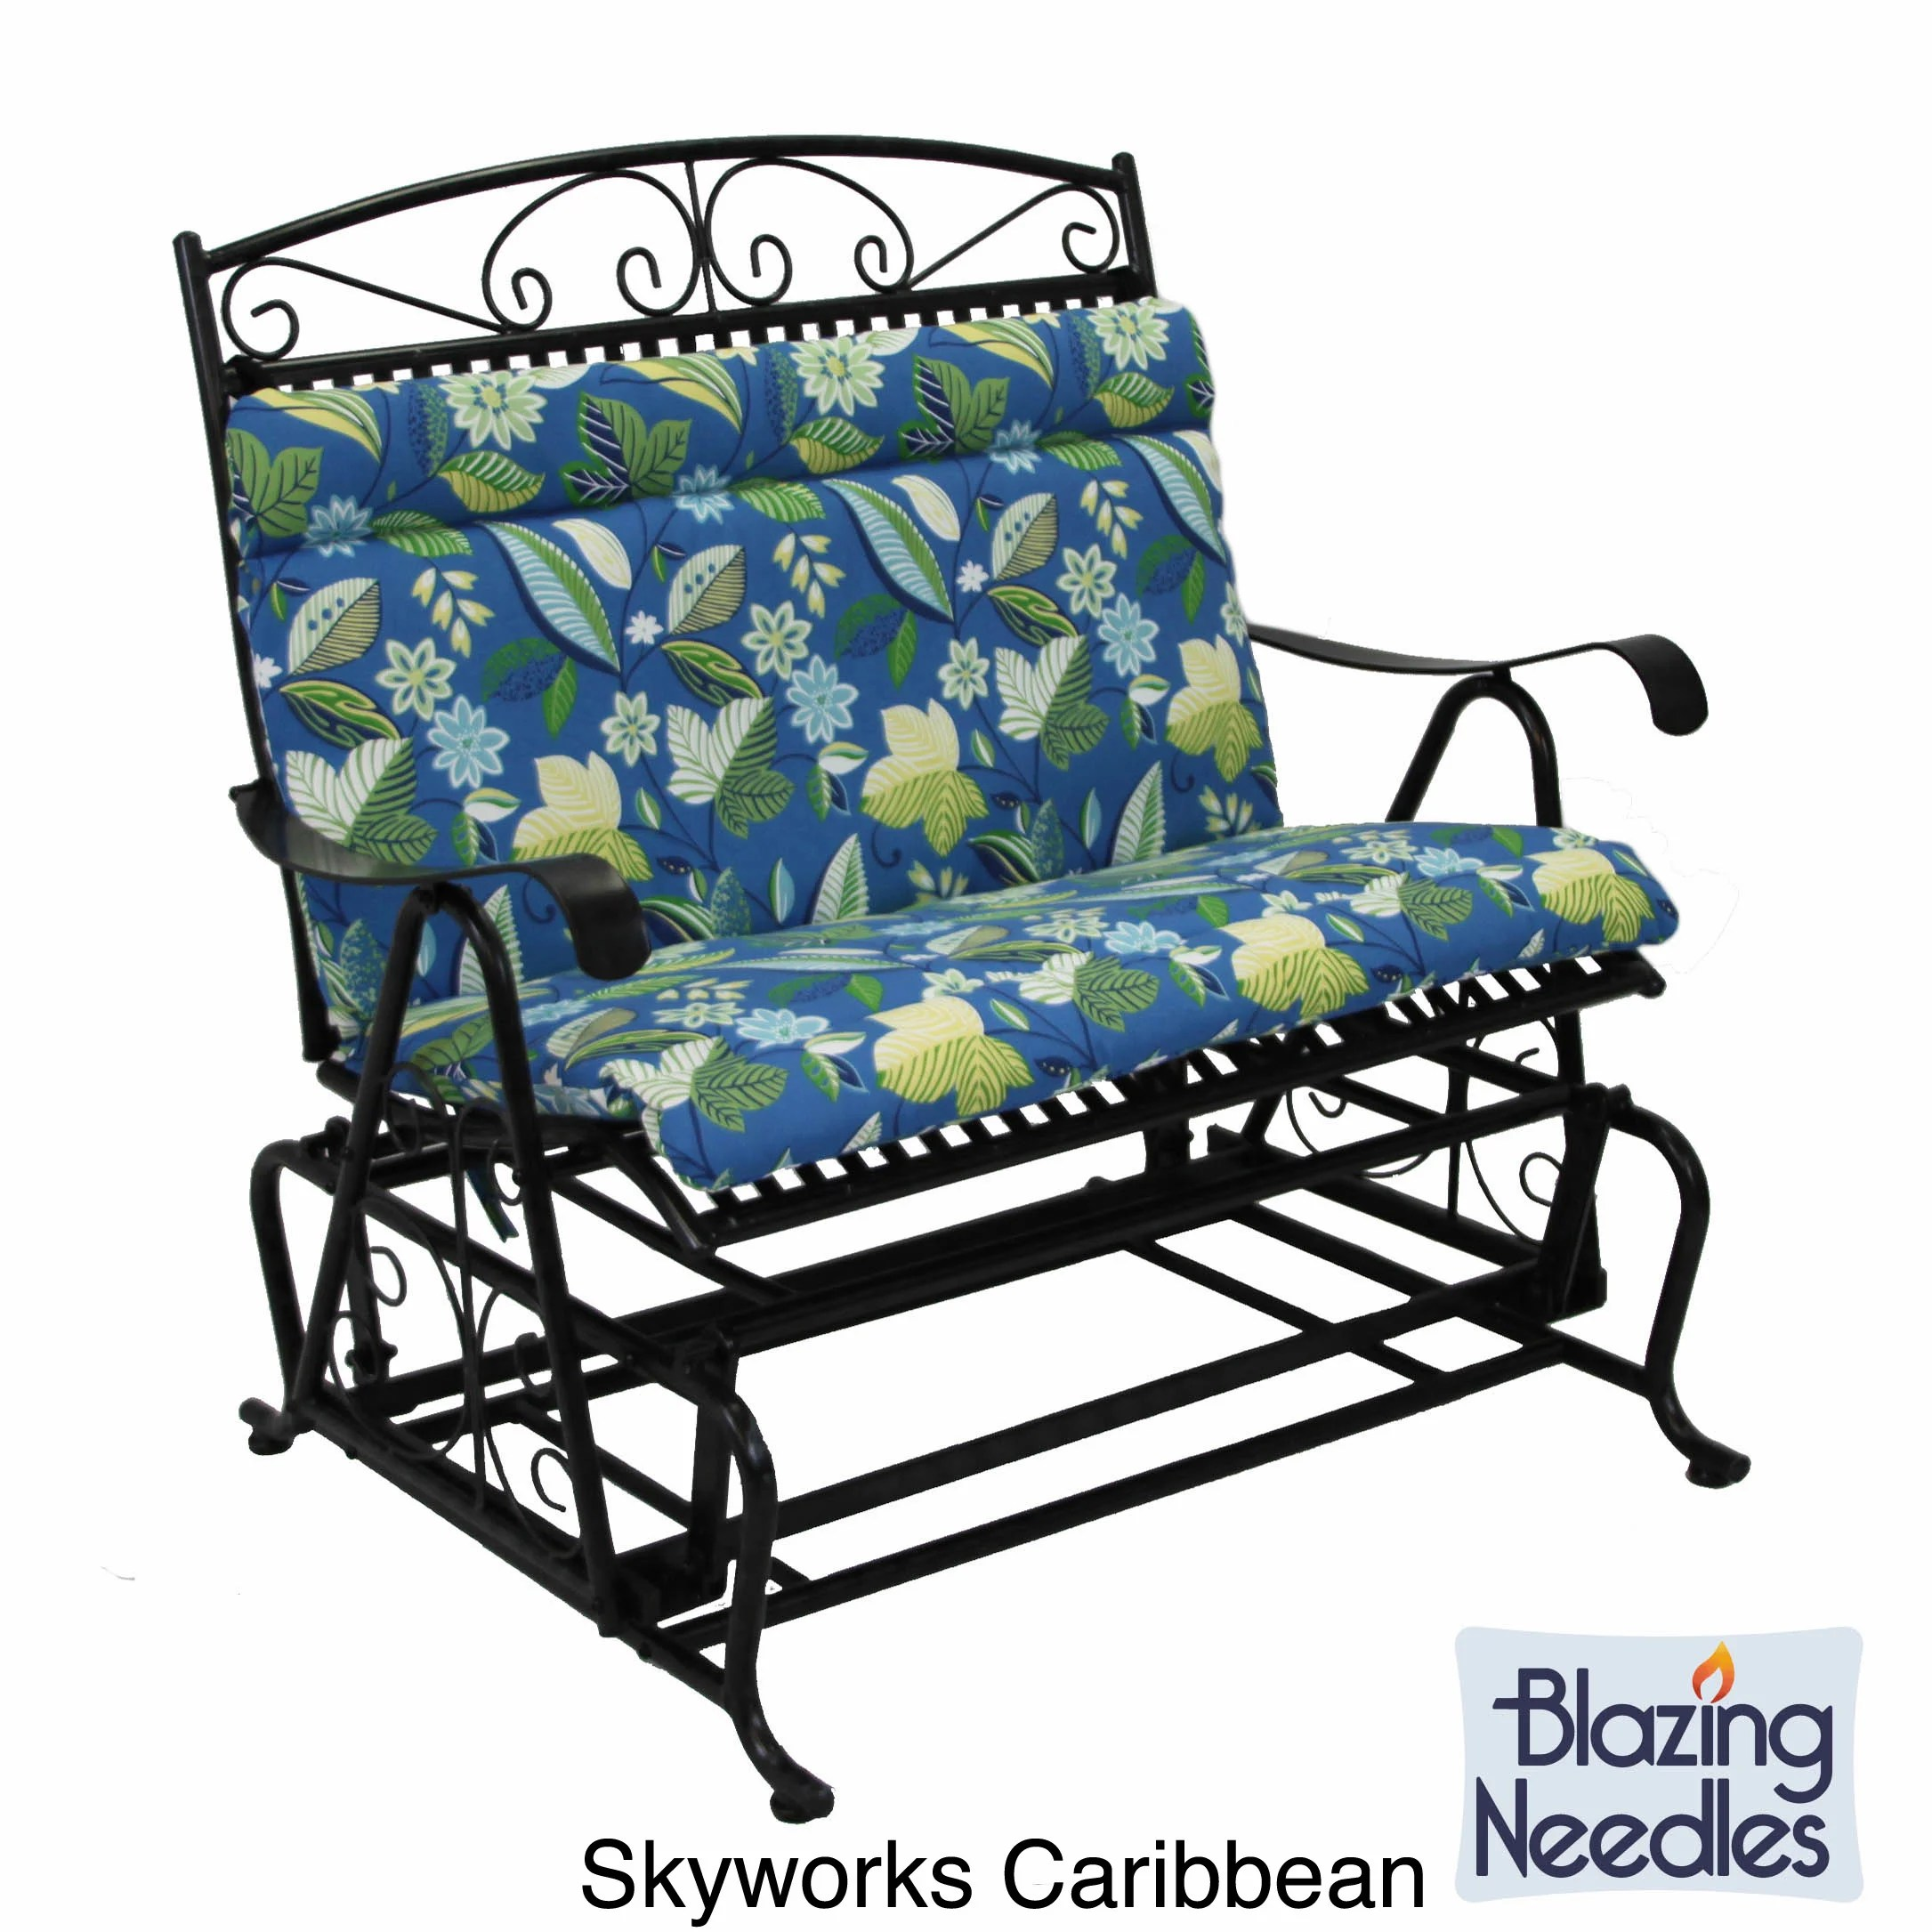 blue floral chair lift chairs for stairs all weather outdoor double glider